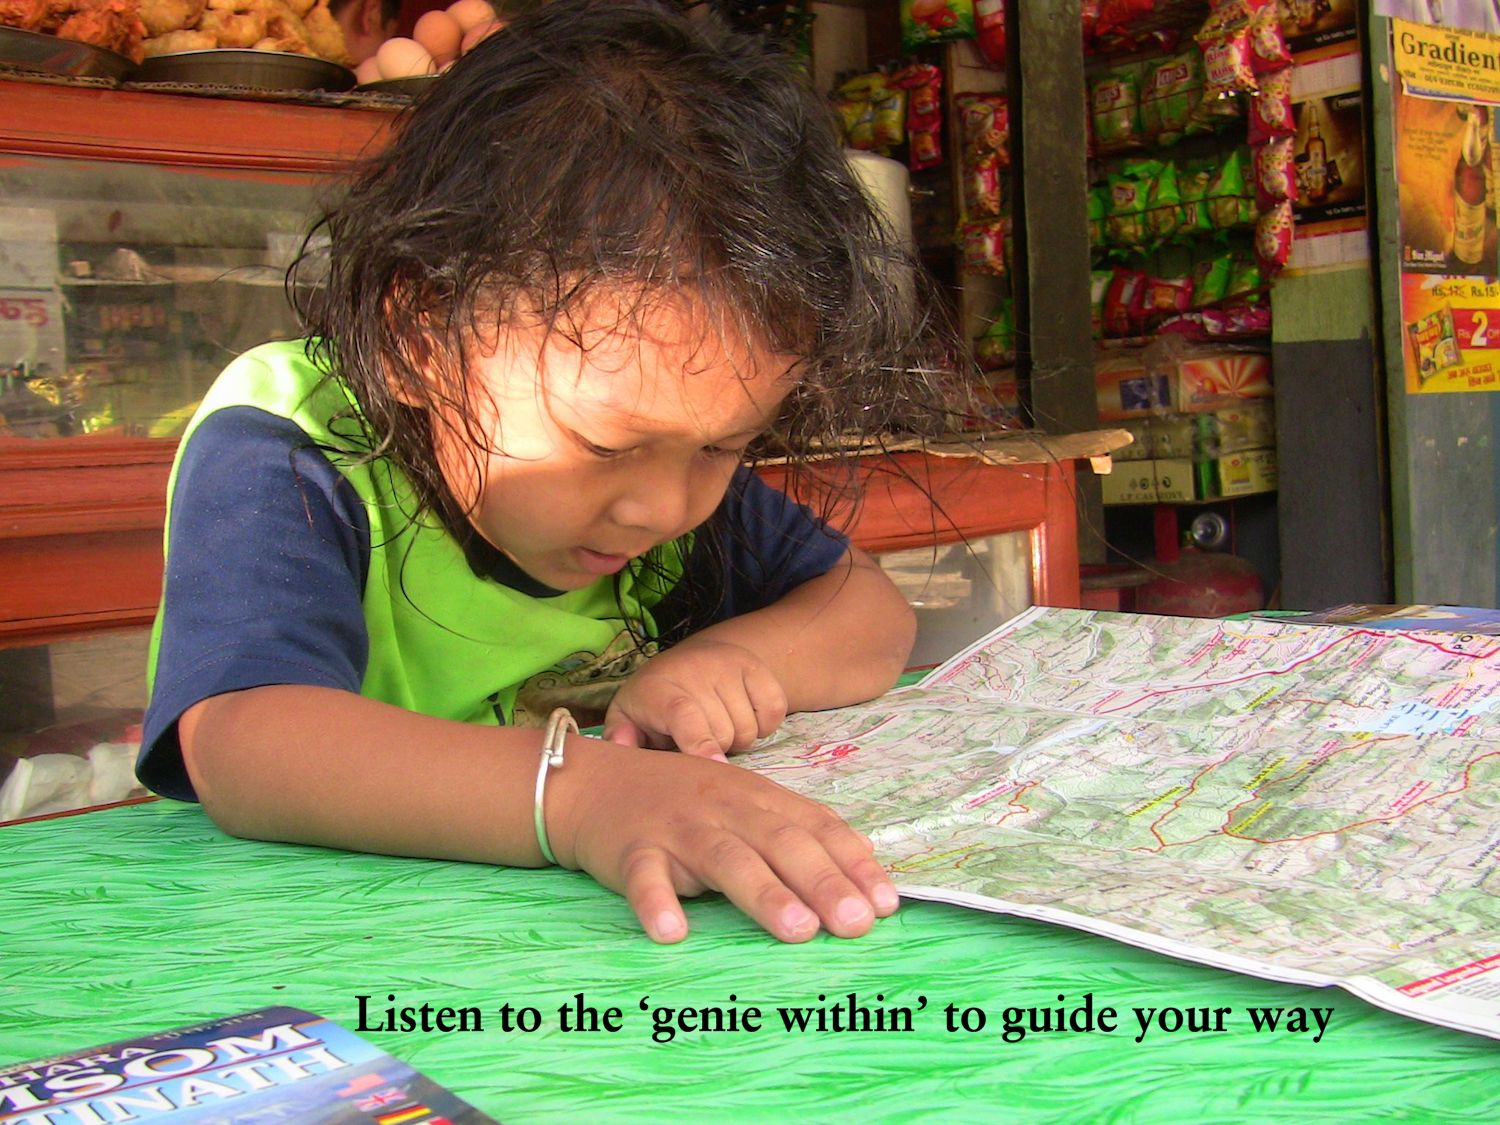 Listen to the genie within to guide your way.jpg